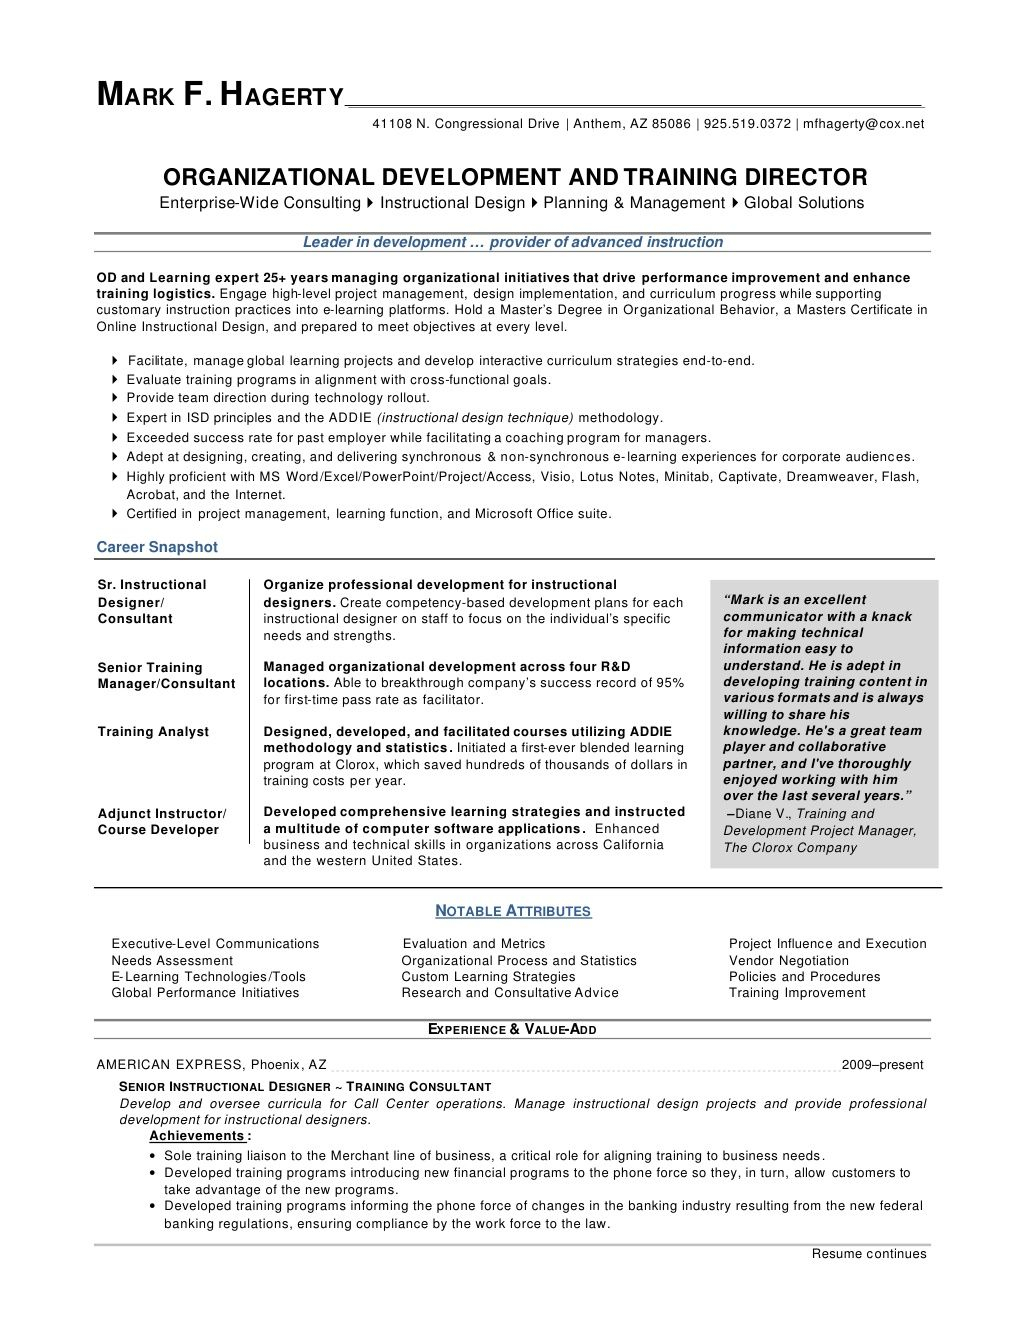 Trainer Resume Example - Mark F Hagerty Od Training Director Resume by Mfhagerty Via